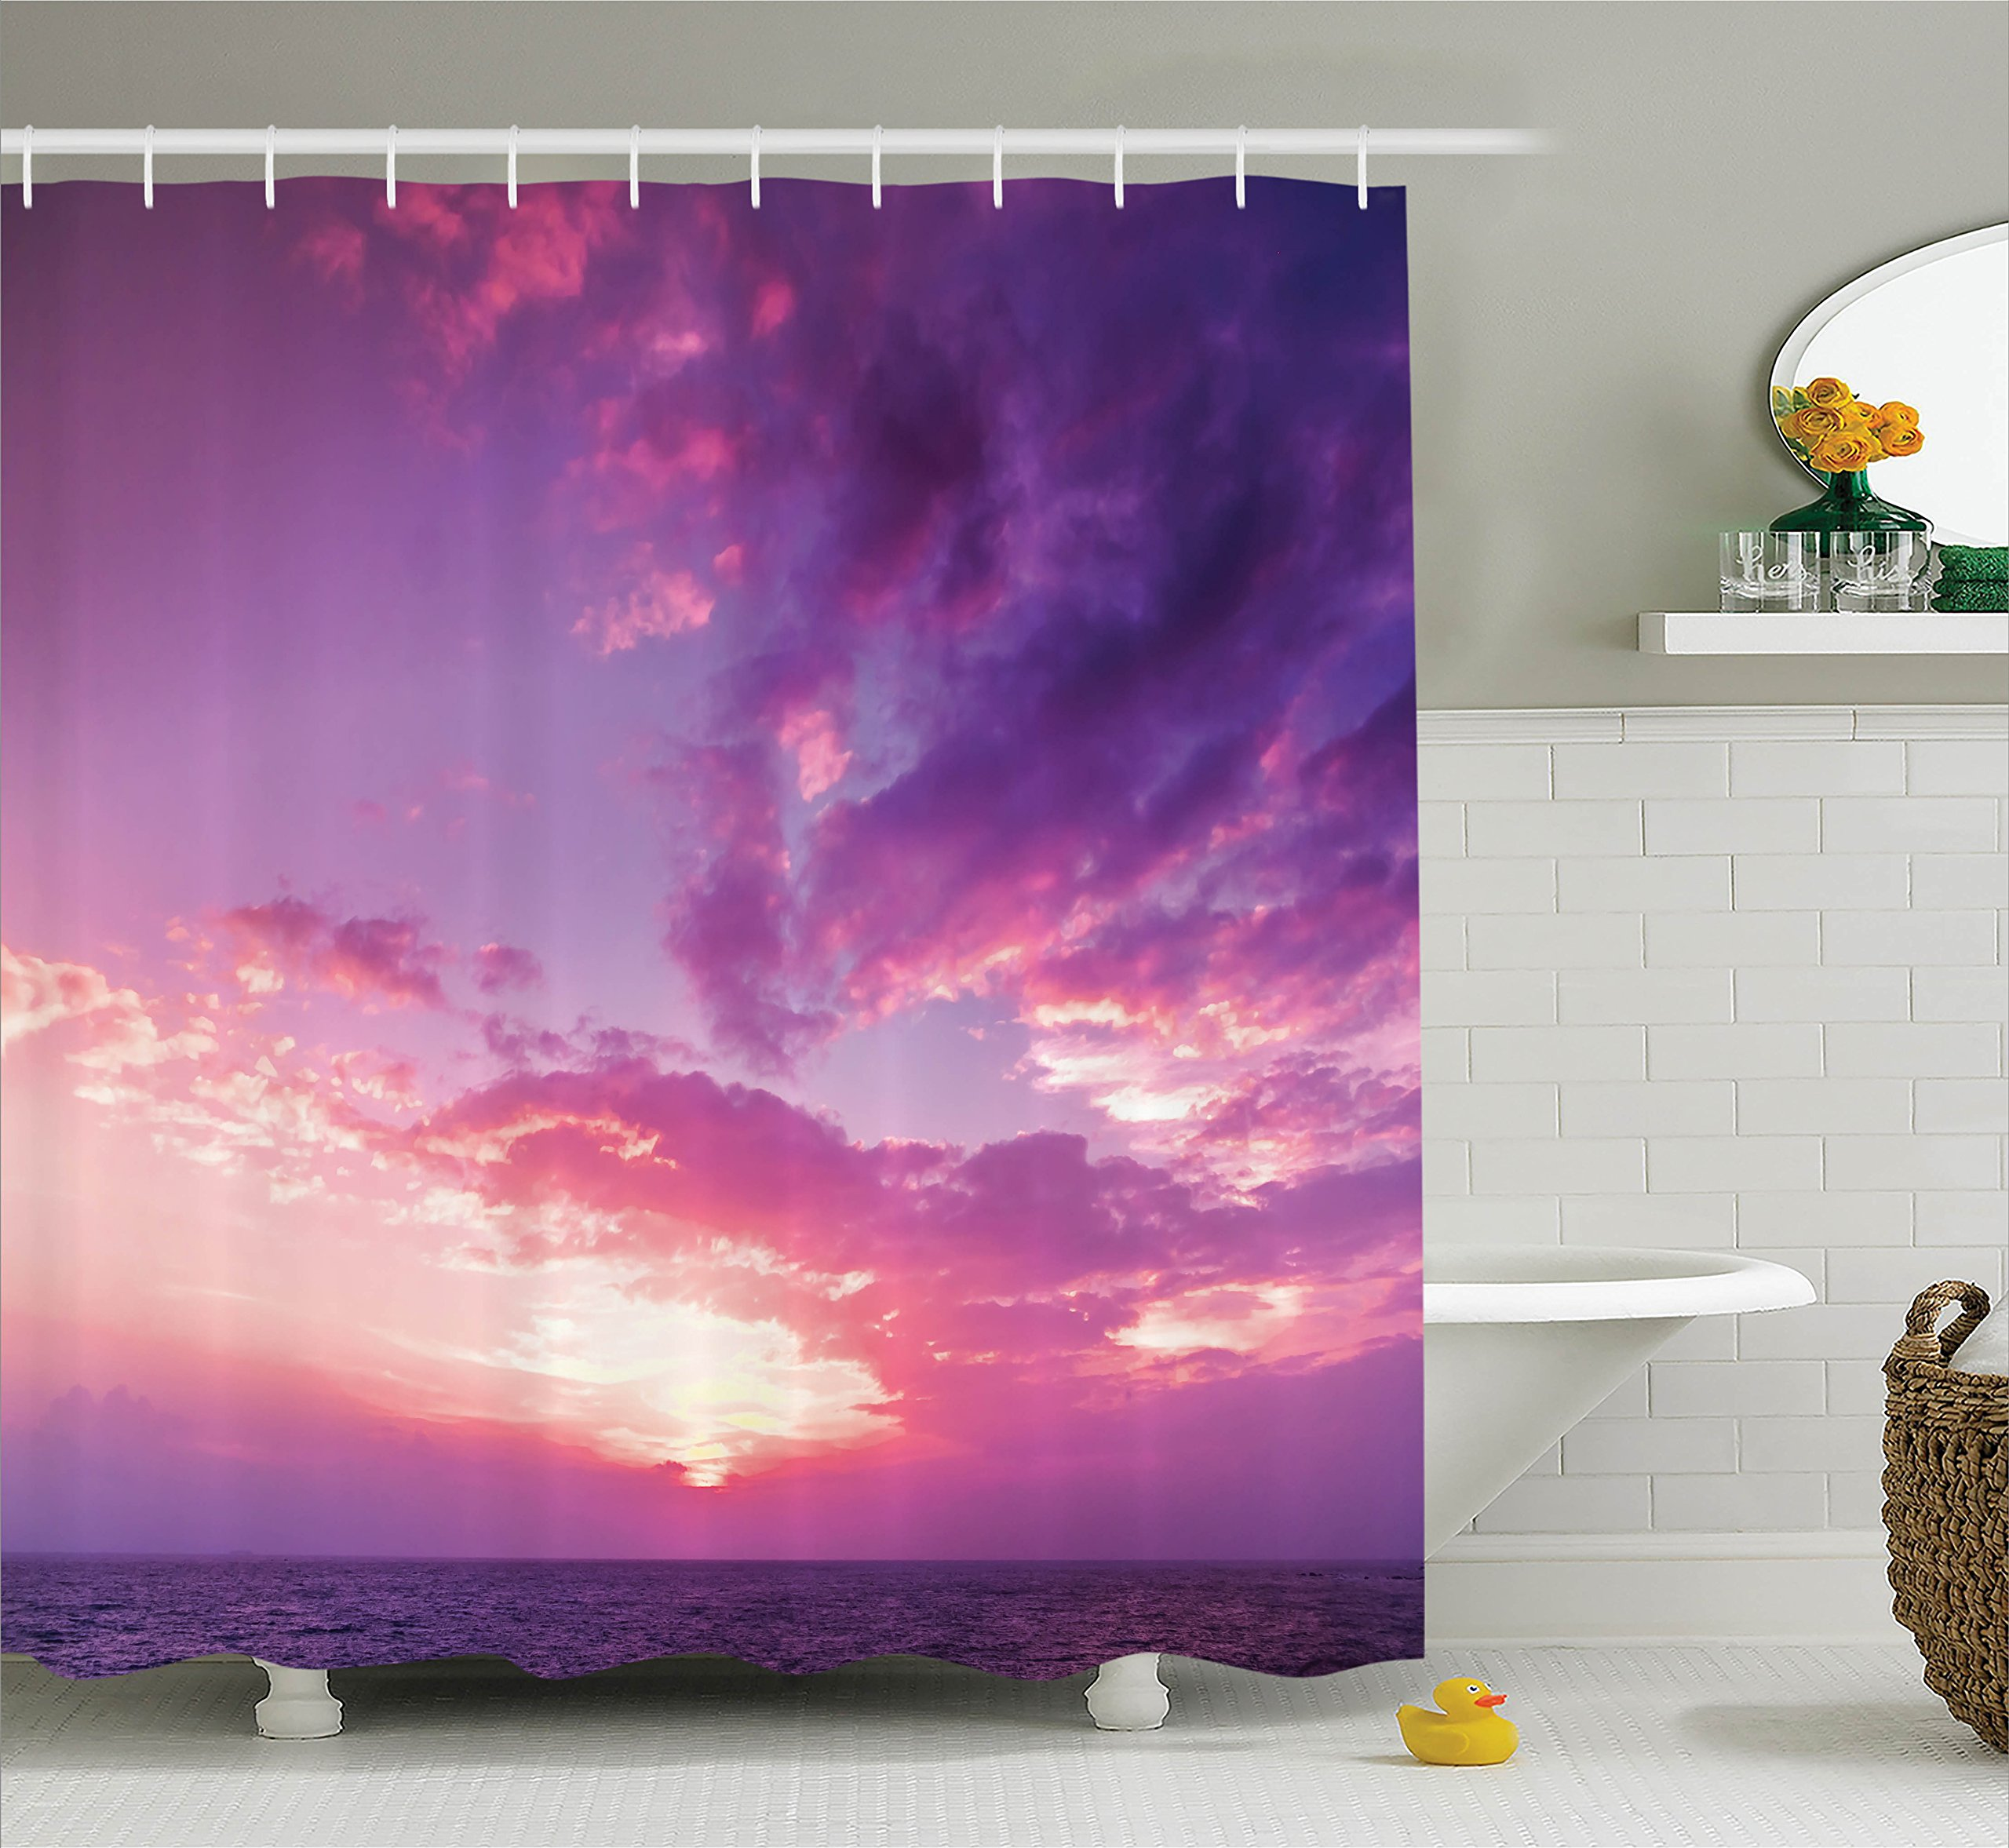 Ambesonne Apartment Decor Collection, Last Sun Lights of the Day Coloring the Sky and Clouds Romance Themed Image, Polyester Fabric Bathroom Shower Curtain, 75 Inches Long, Purple Yellow